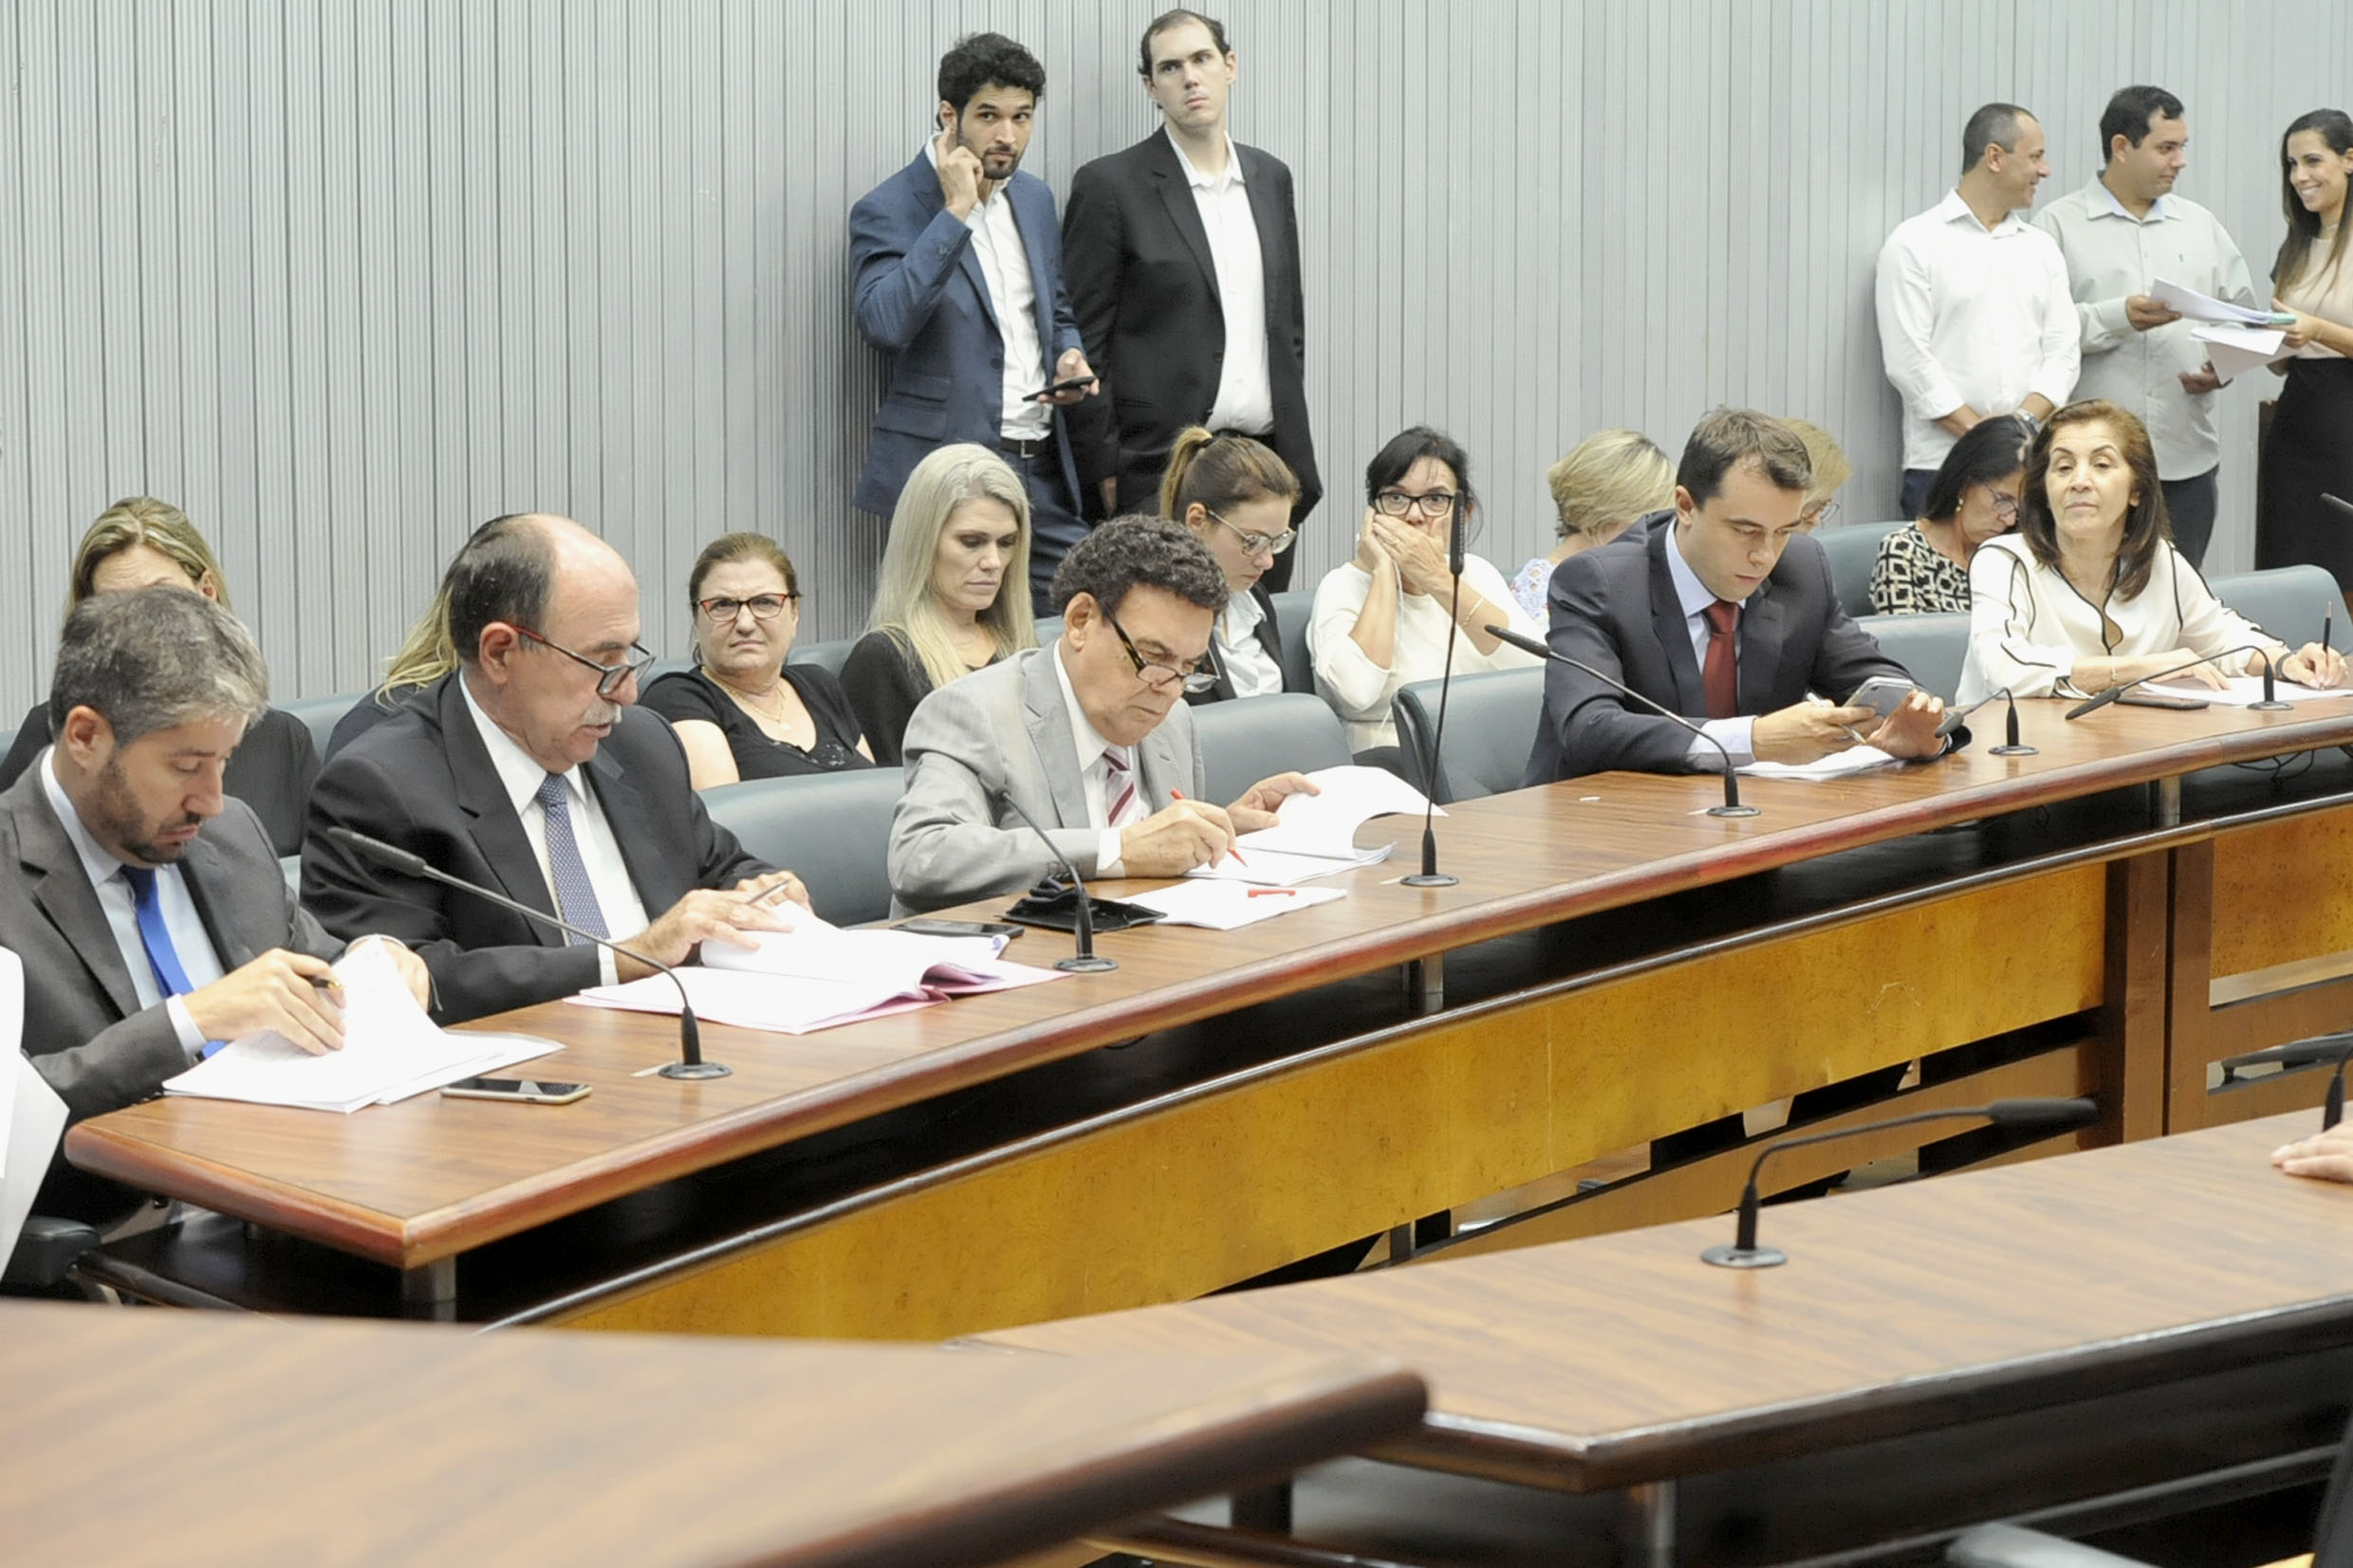 Parlamentares na comissão<a style='float:right' href='https://www3.al.sp.gov.br/repositorio/noticia/N-03-2019/fg231001.jpg' target=_blank><img src='/_img/material-file-download-white.png' width='14px' alt='Clique para baixar a imagem'></a>